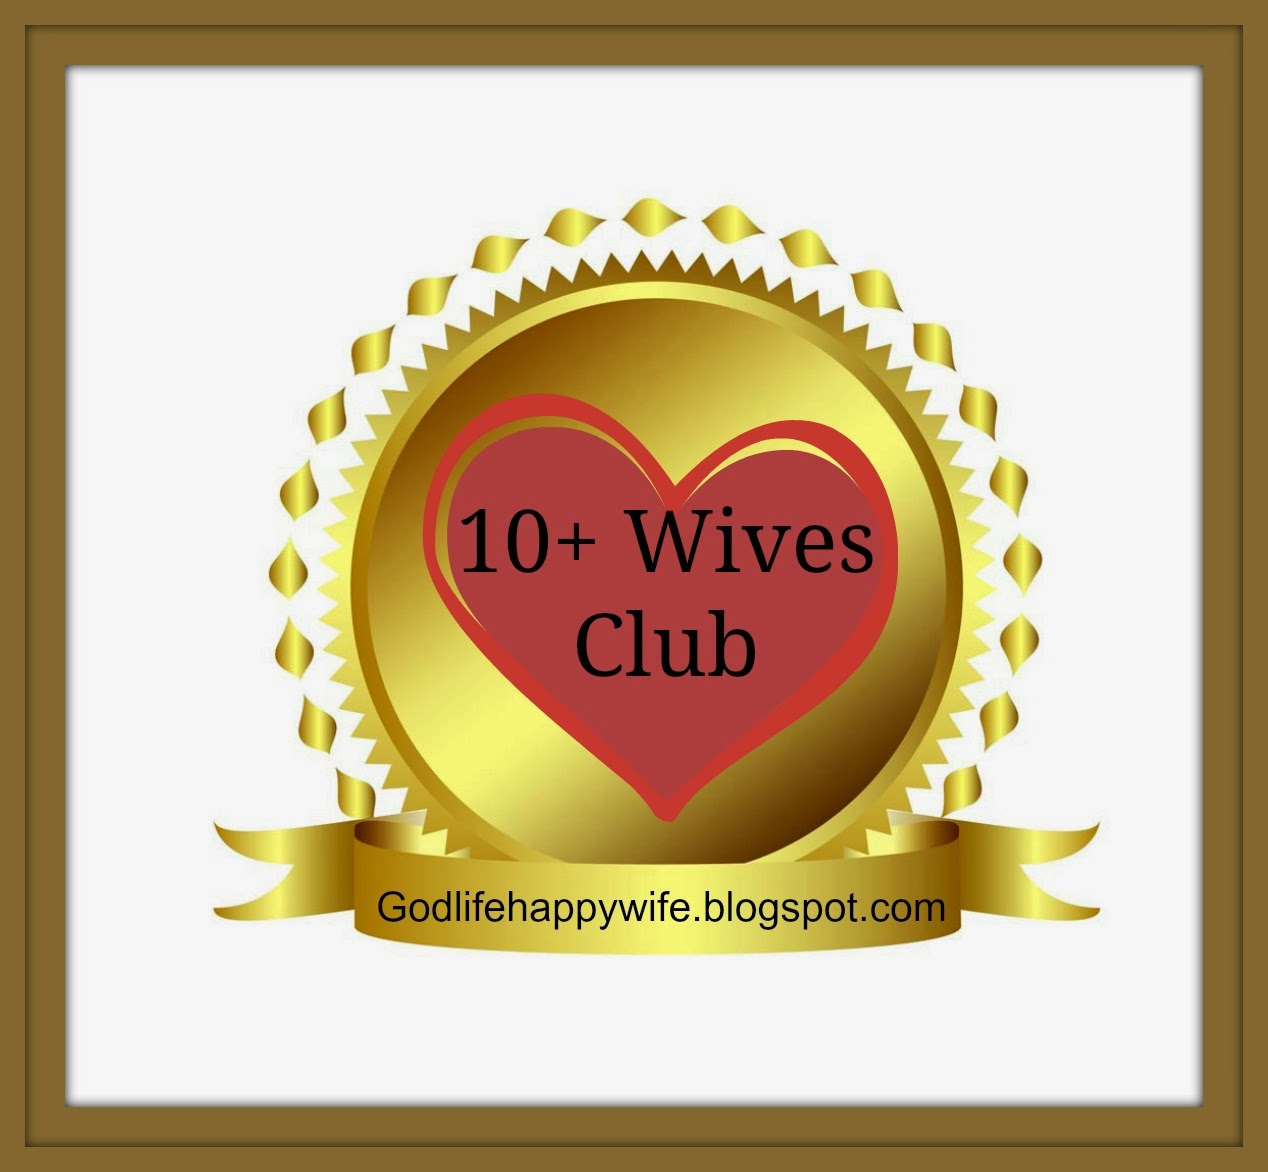 Are you a 10+ Wife?